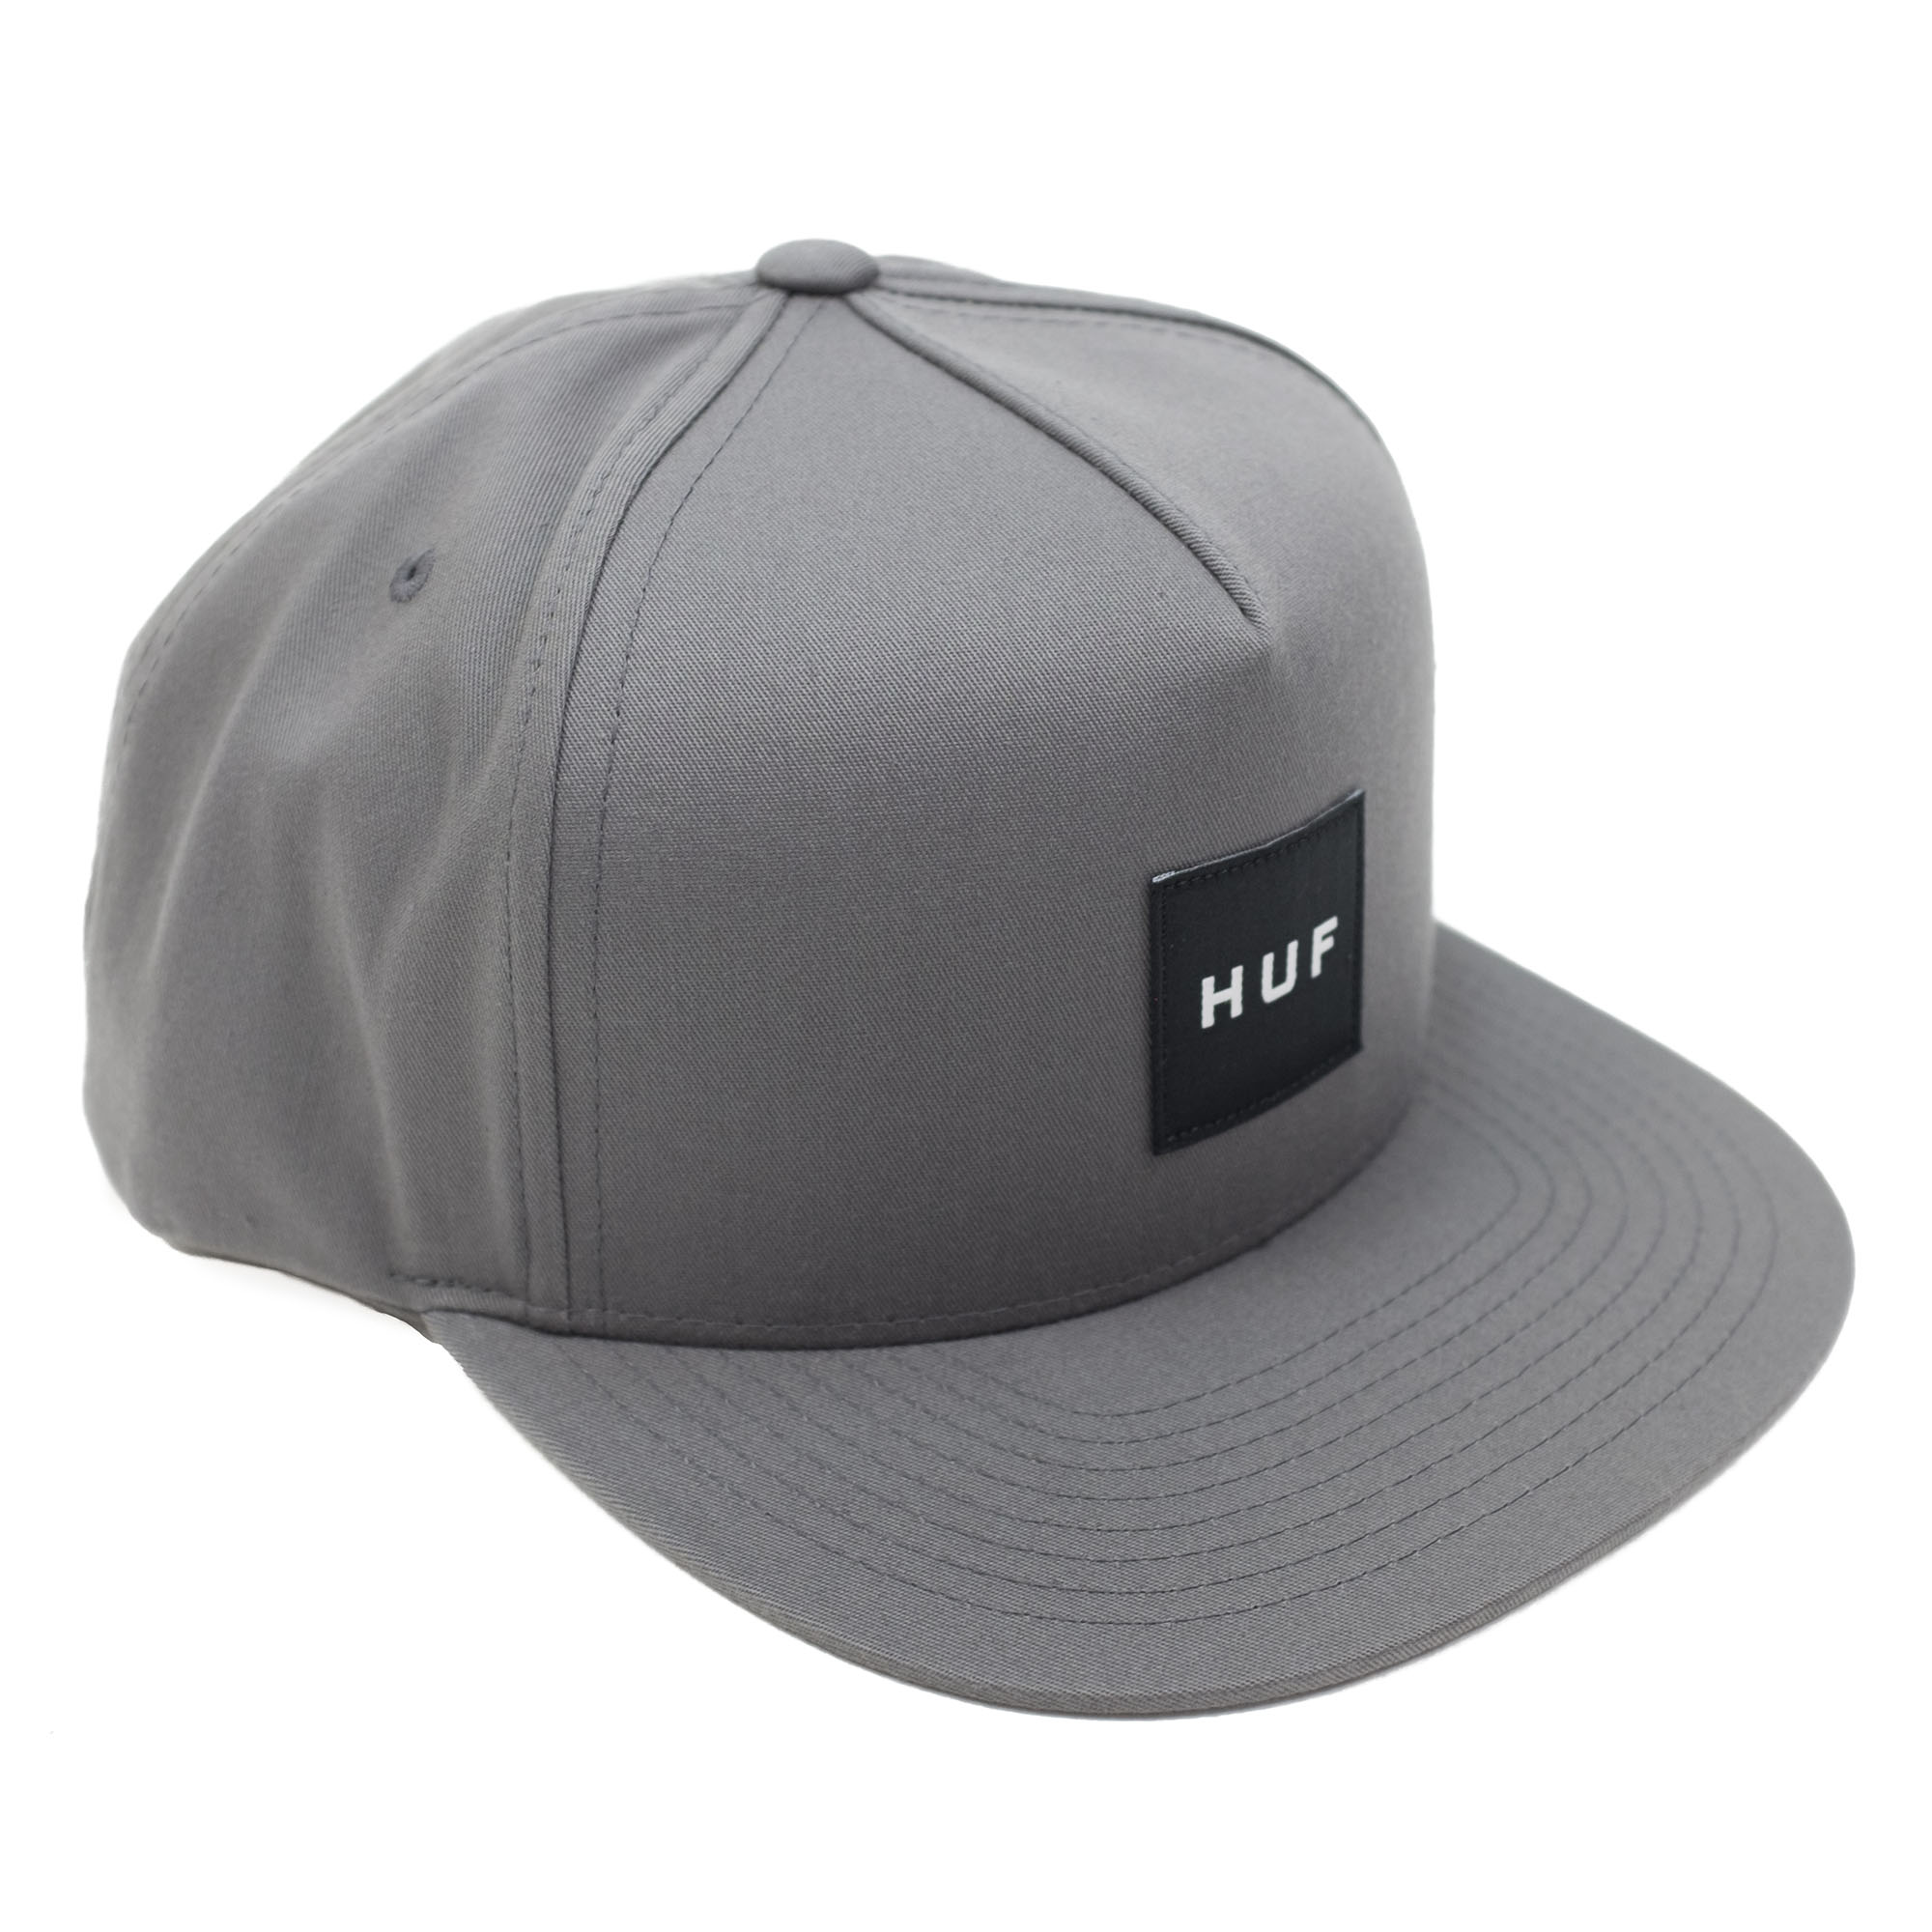 HUF Essentials Box Snapback Hat - Charcoal